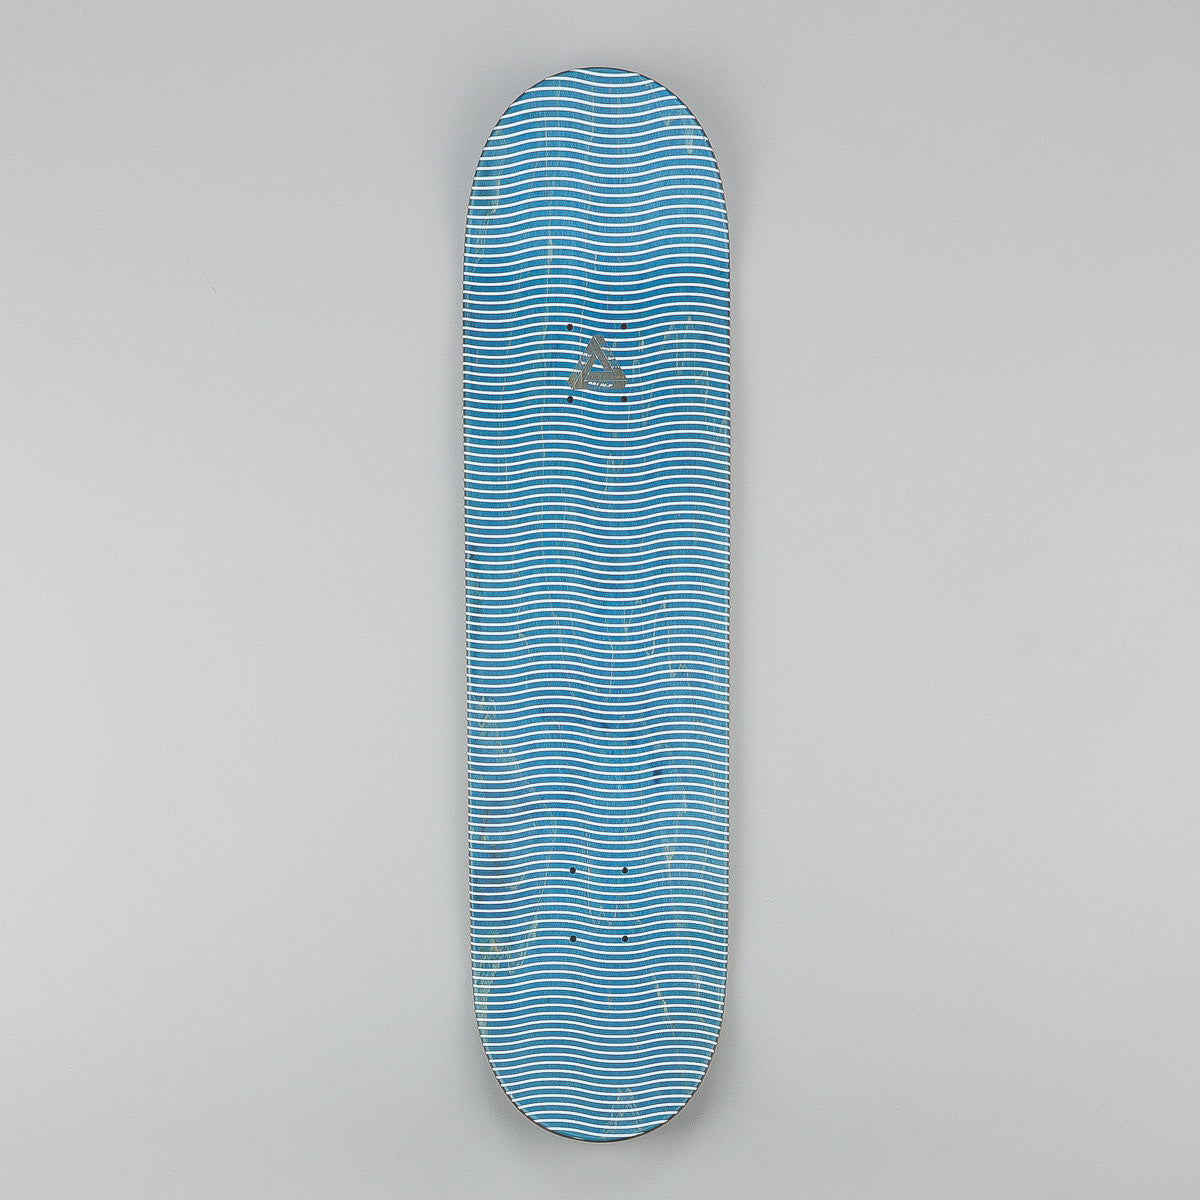 Palace Trippy Stick White Deck - 8.1""